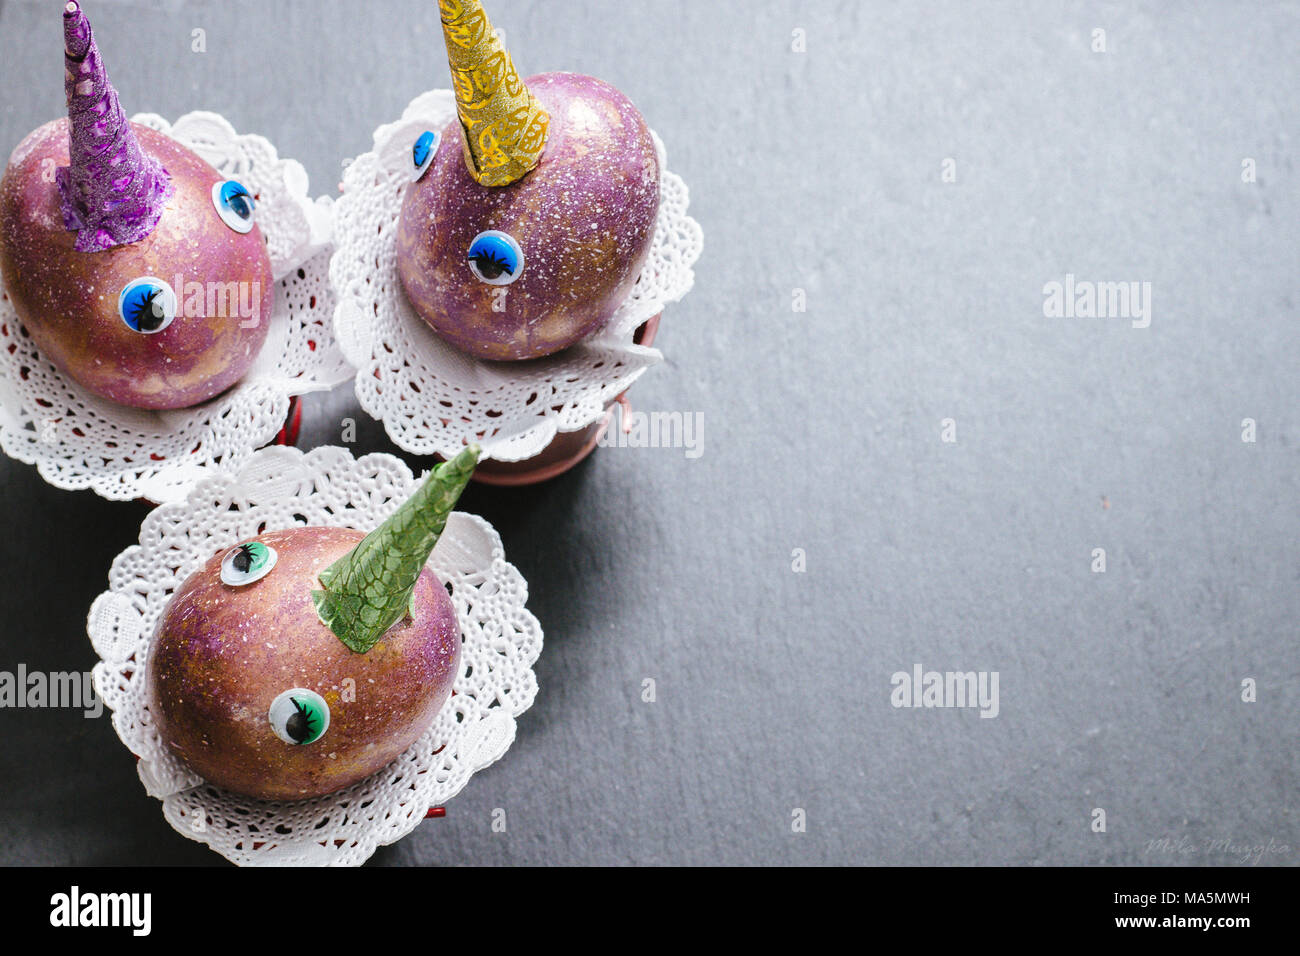 6b1b092d65a1 Easter cosmic purple and gold crafted eggs unicorns with eyes and colorful  patterned horns on slate background with lace napkins. Copyspace. Top view